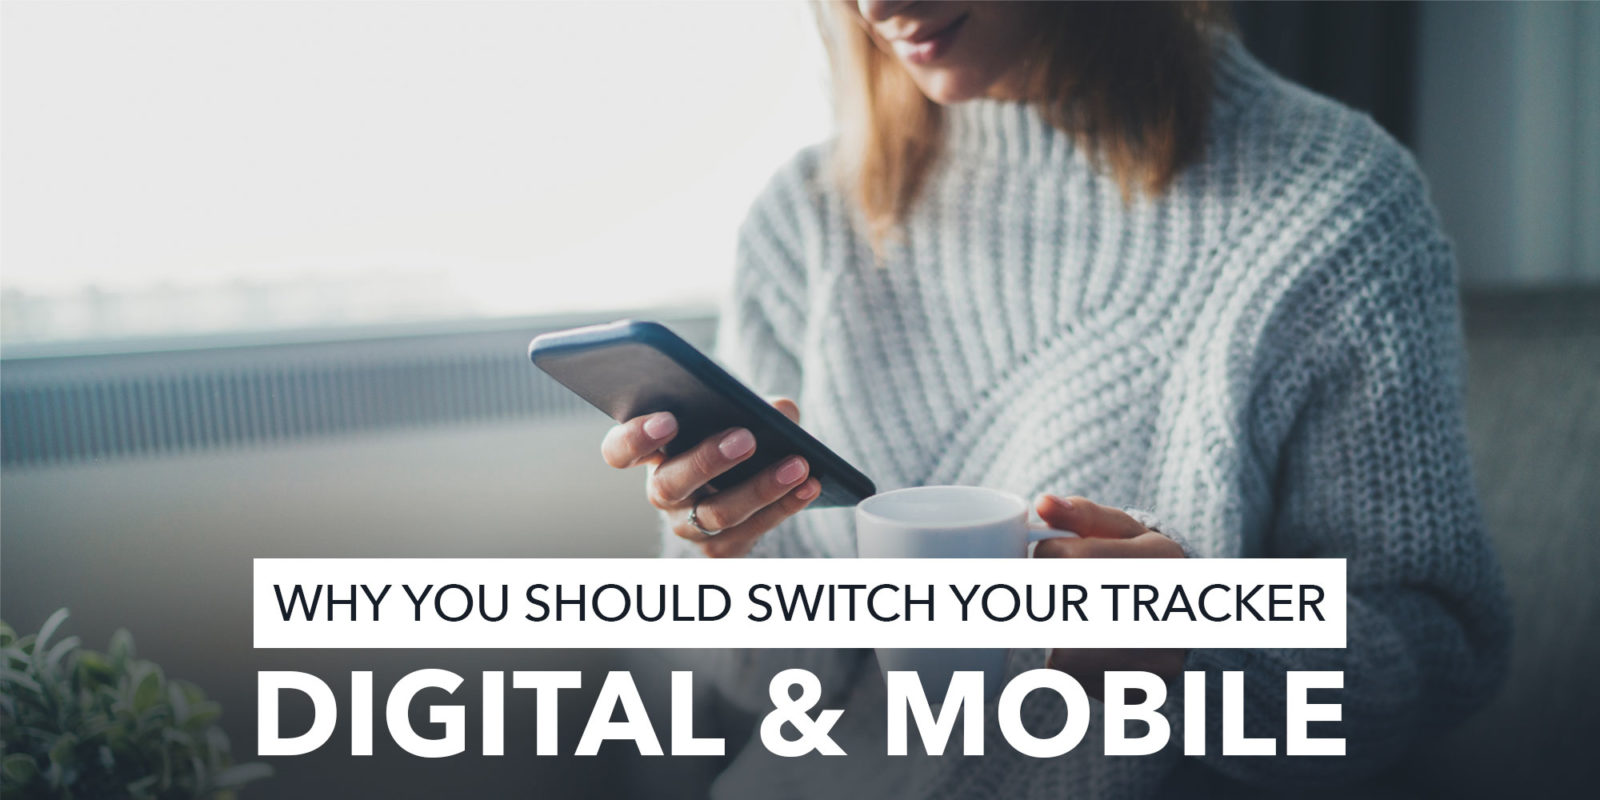 Why you should switch your tracker: digital & mobile.